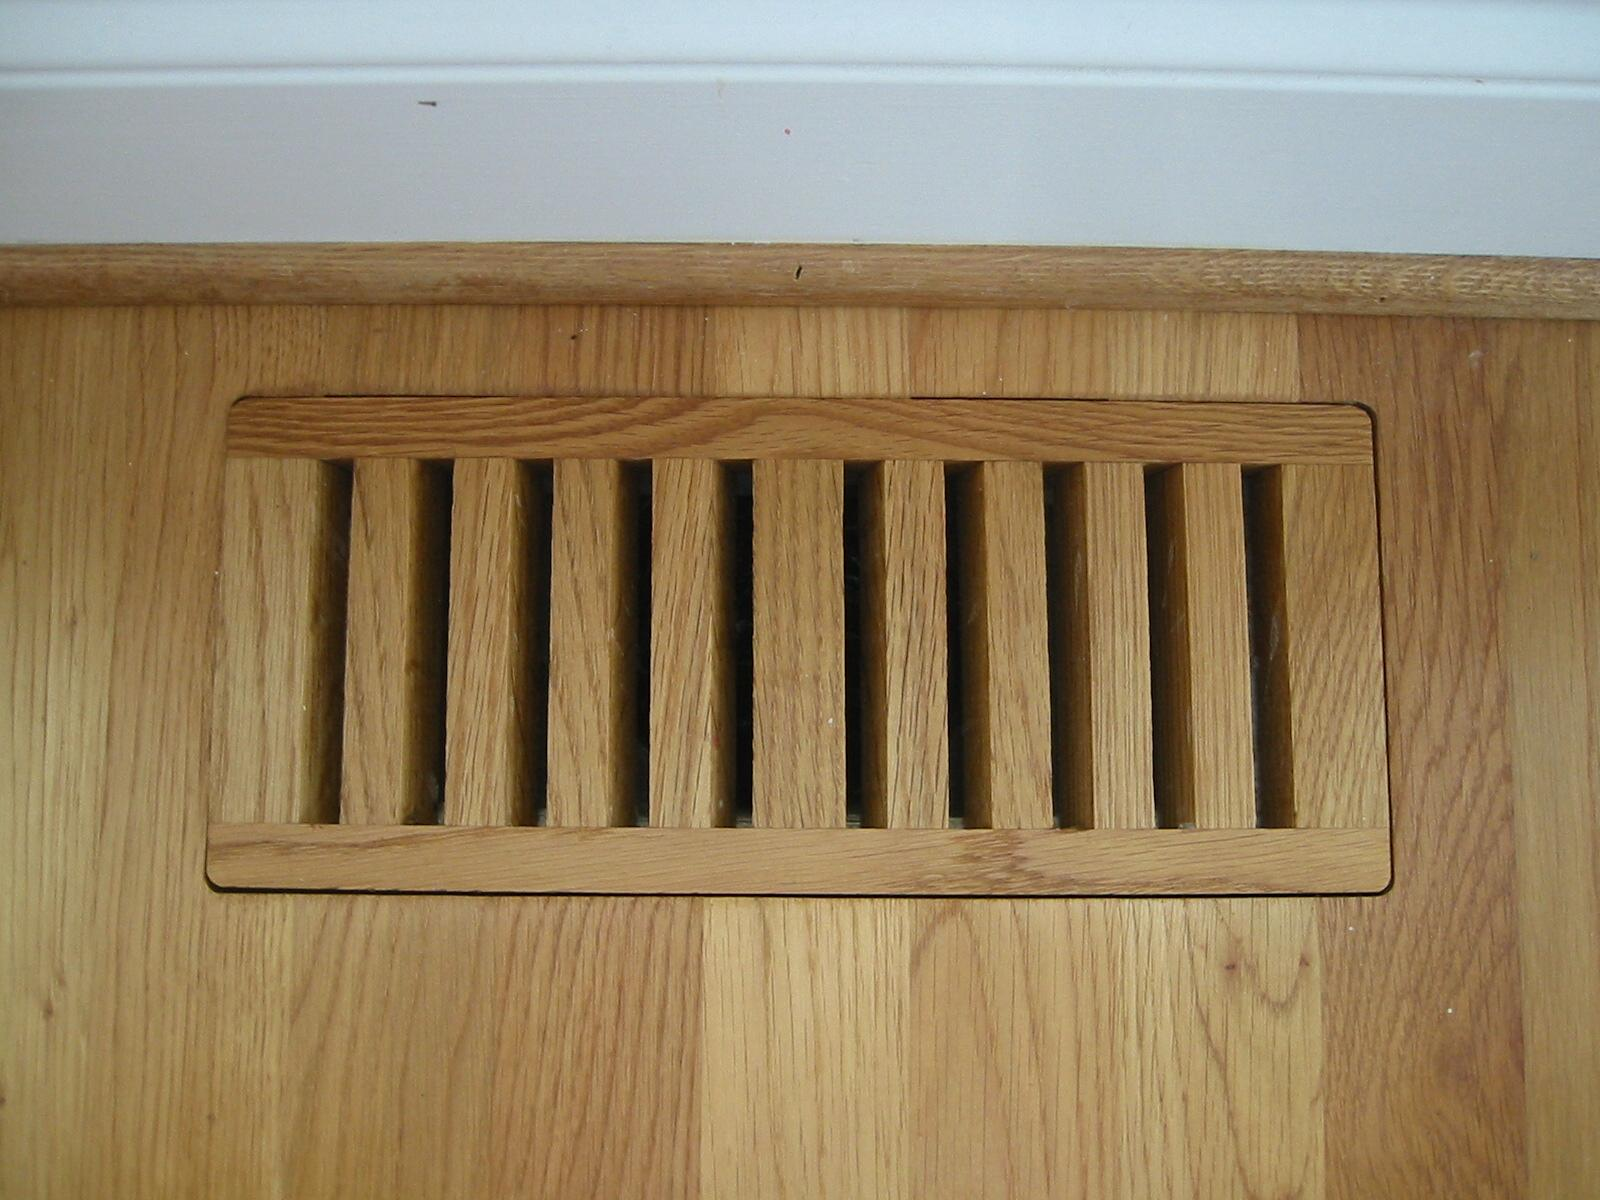 Volko Wood Floor Vents Air Grilles And Registers... Help Sizing Stock And  Custom Wood Vents.